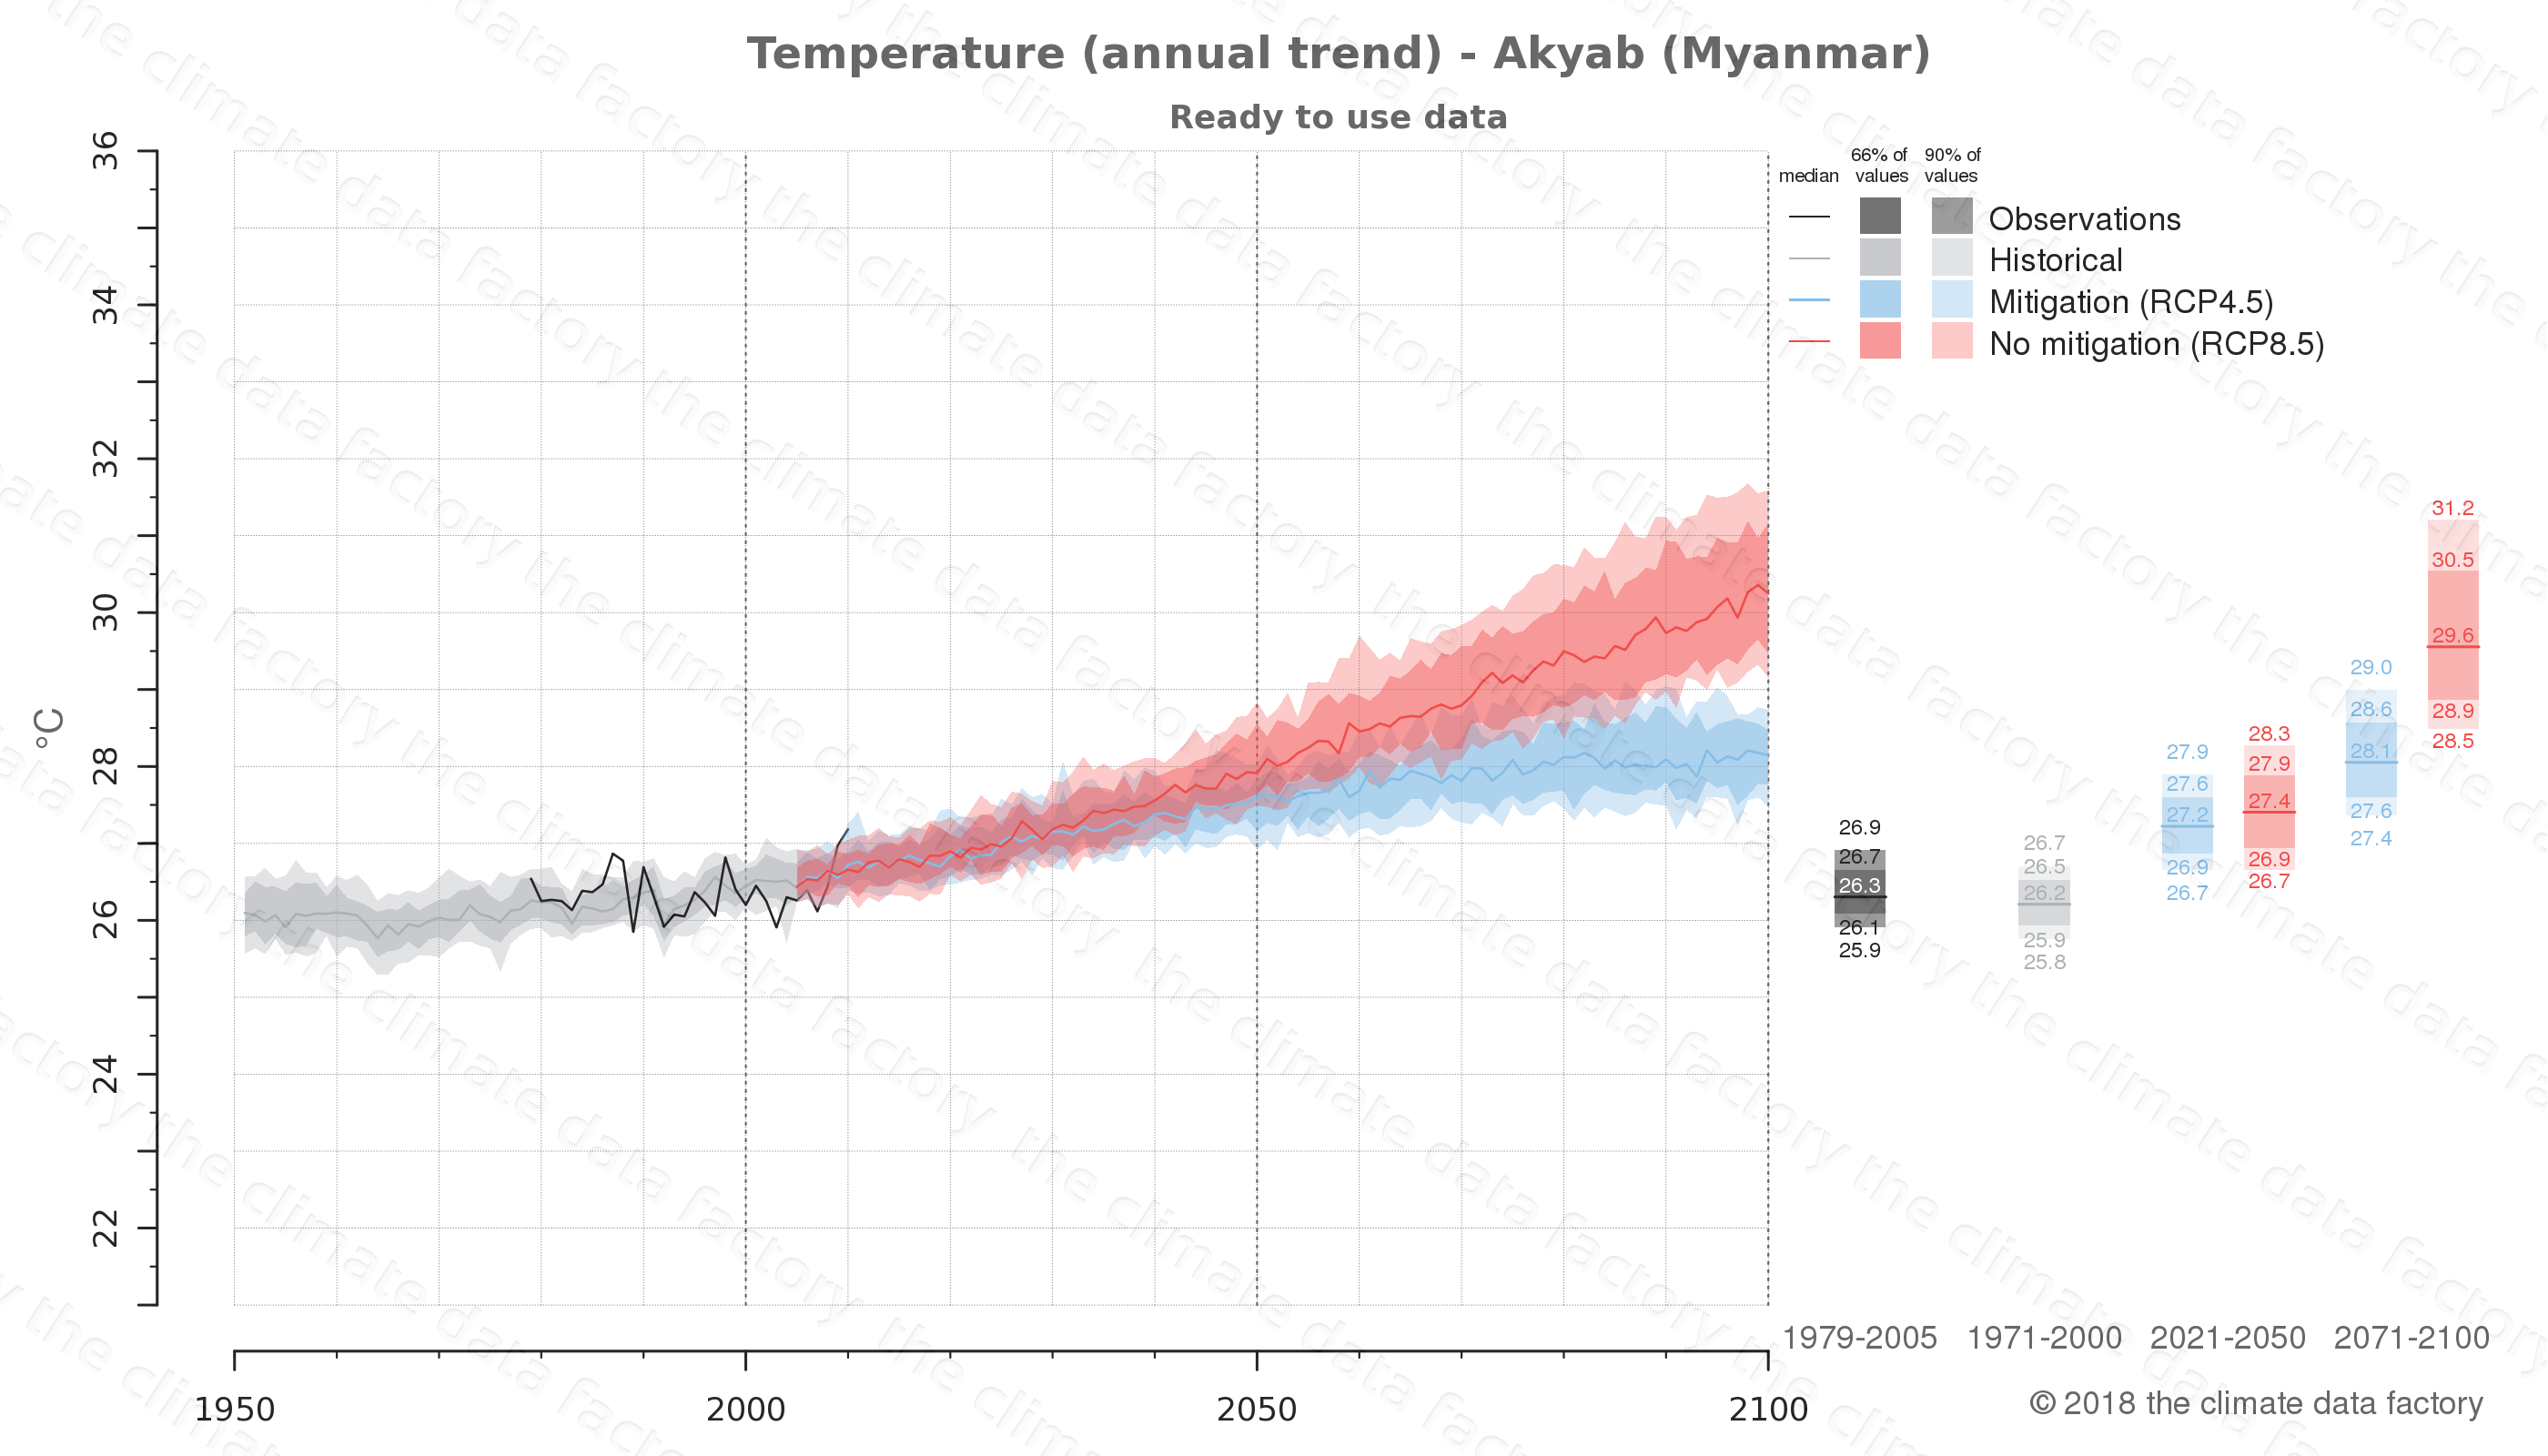 climate change data policy adaptation climate graph city data temperature akyab myanmar